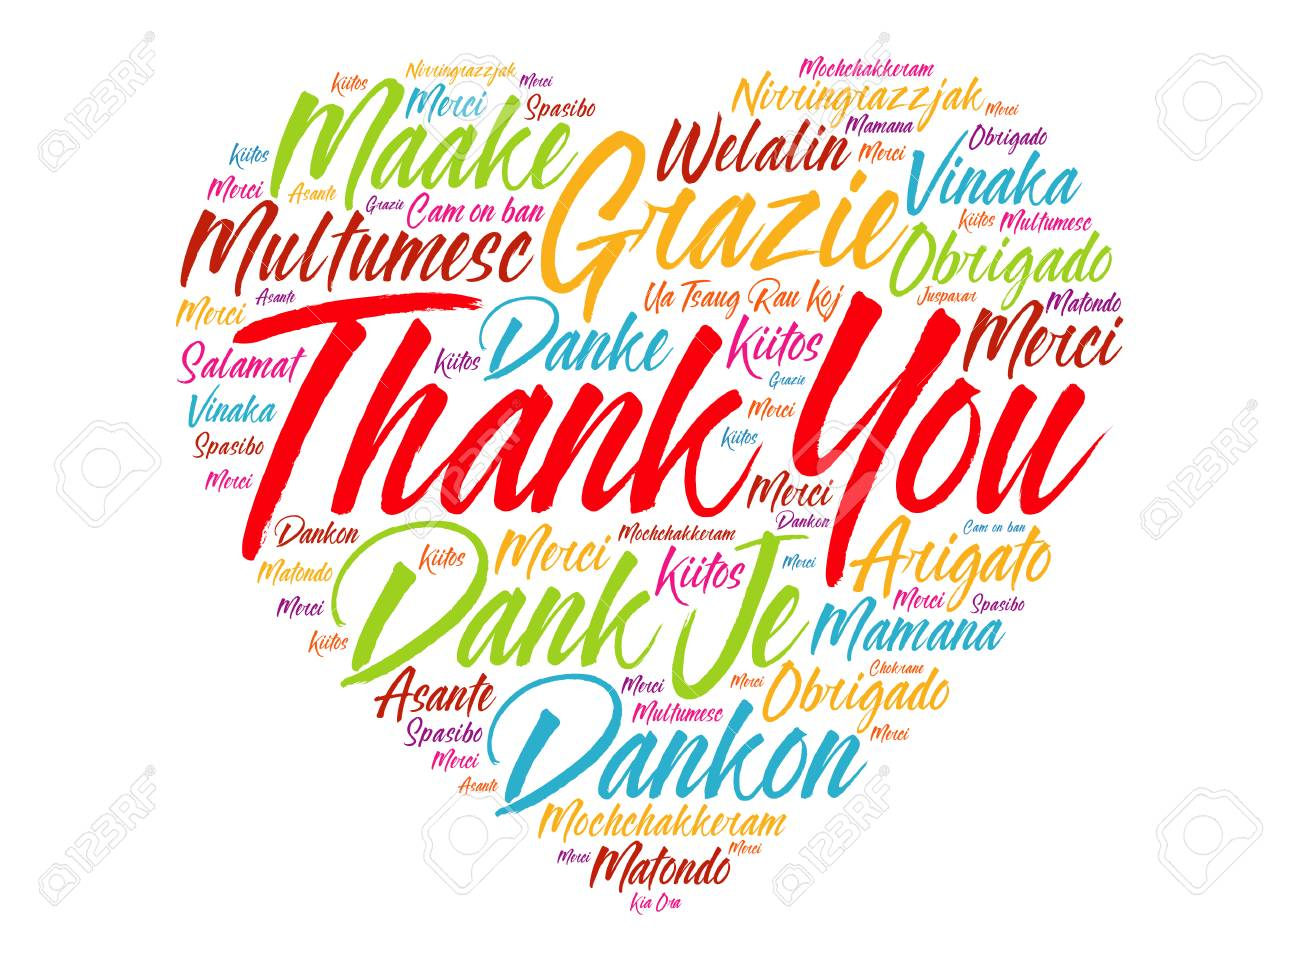 thank you love heart word cloud in different languages concept rh 123rf com Thank You Clip Art free thank you in different languages clipart